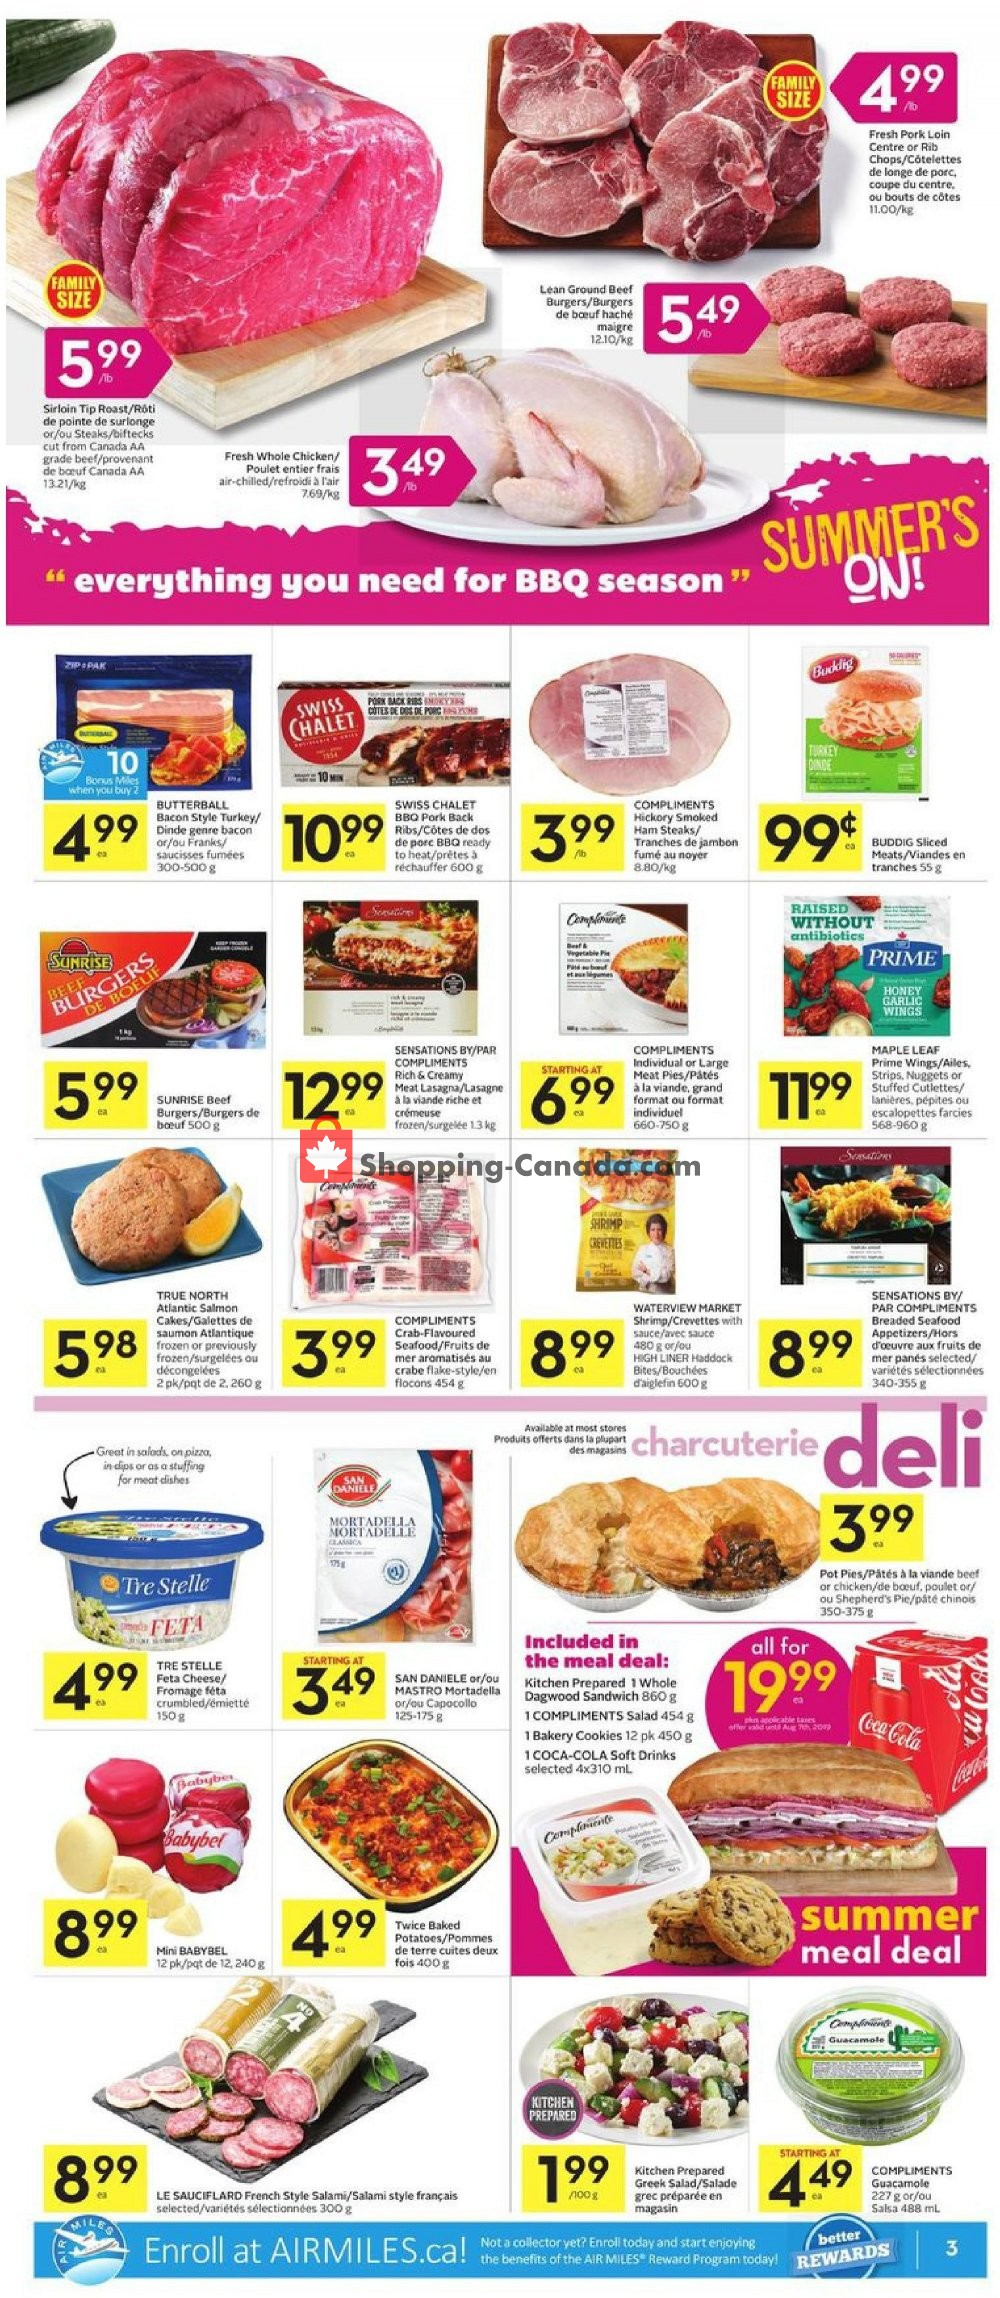 Flyer Foodland Canada - from Thursday July 11, 2019 to Wednesday July 17, 2019